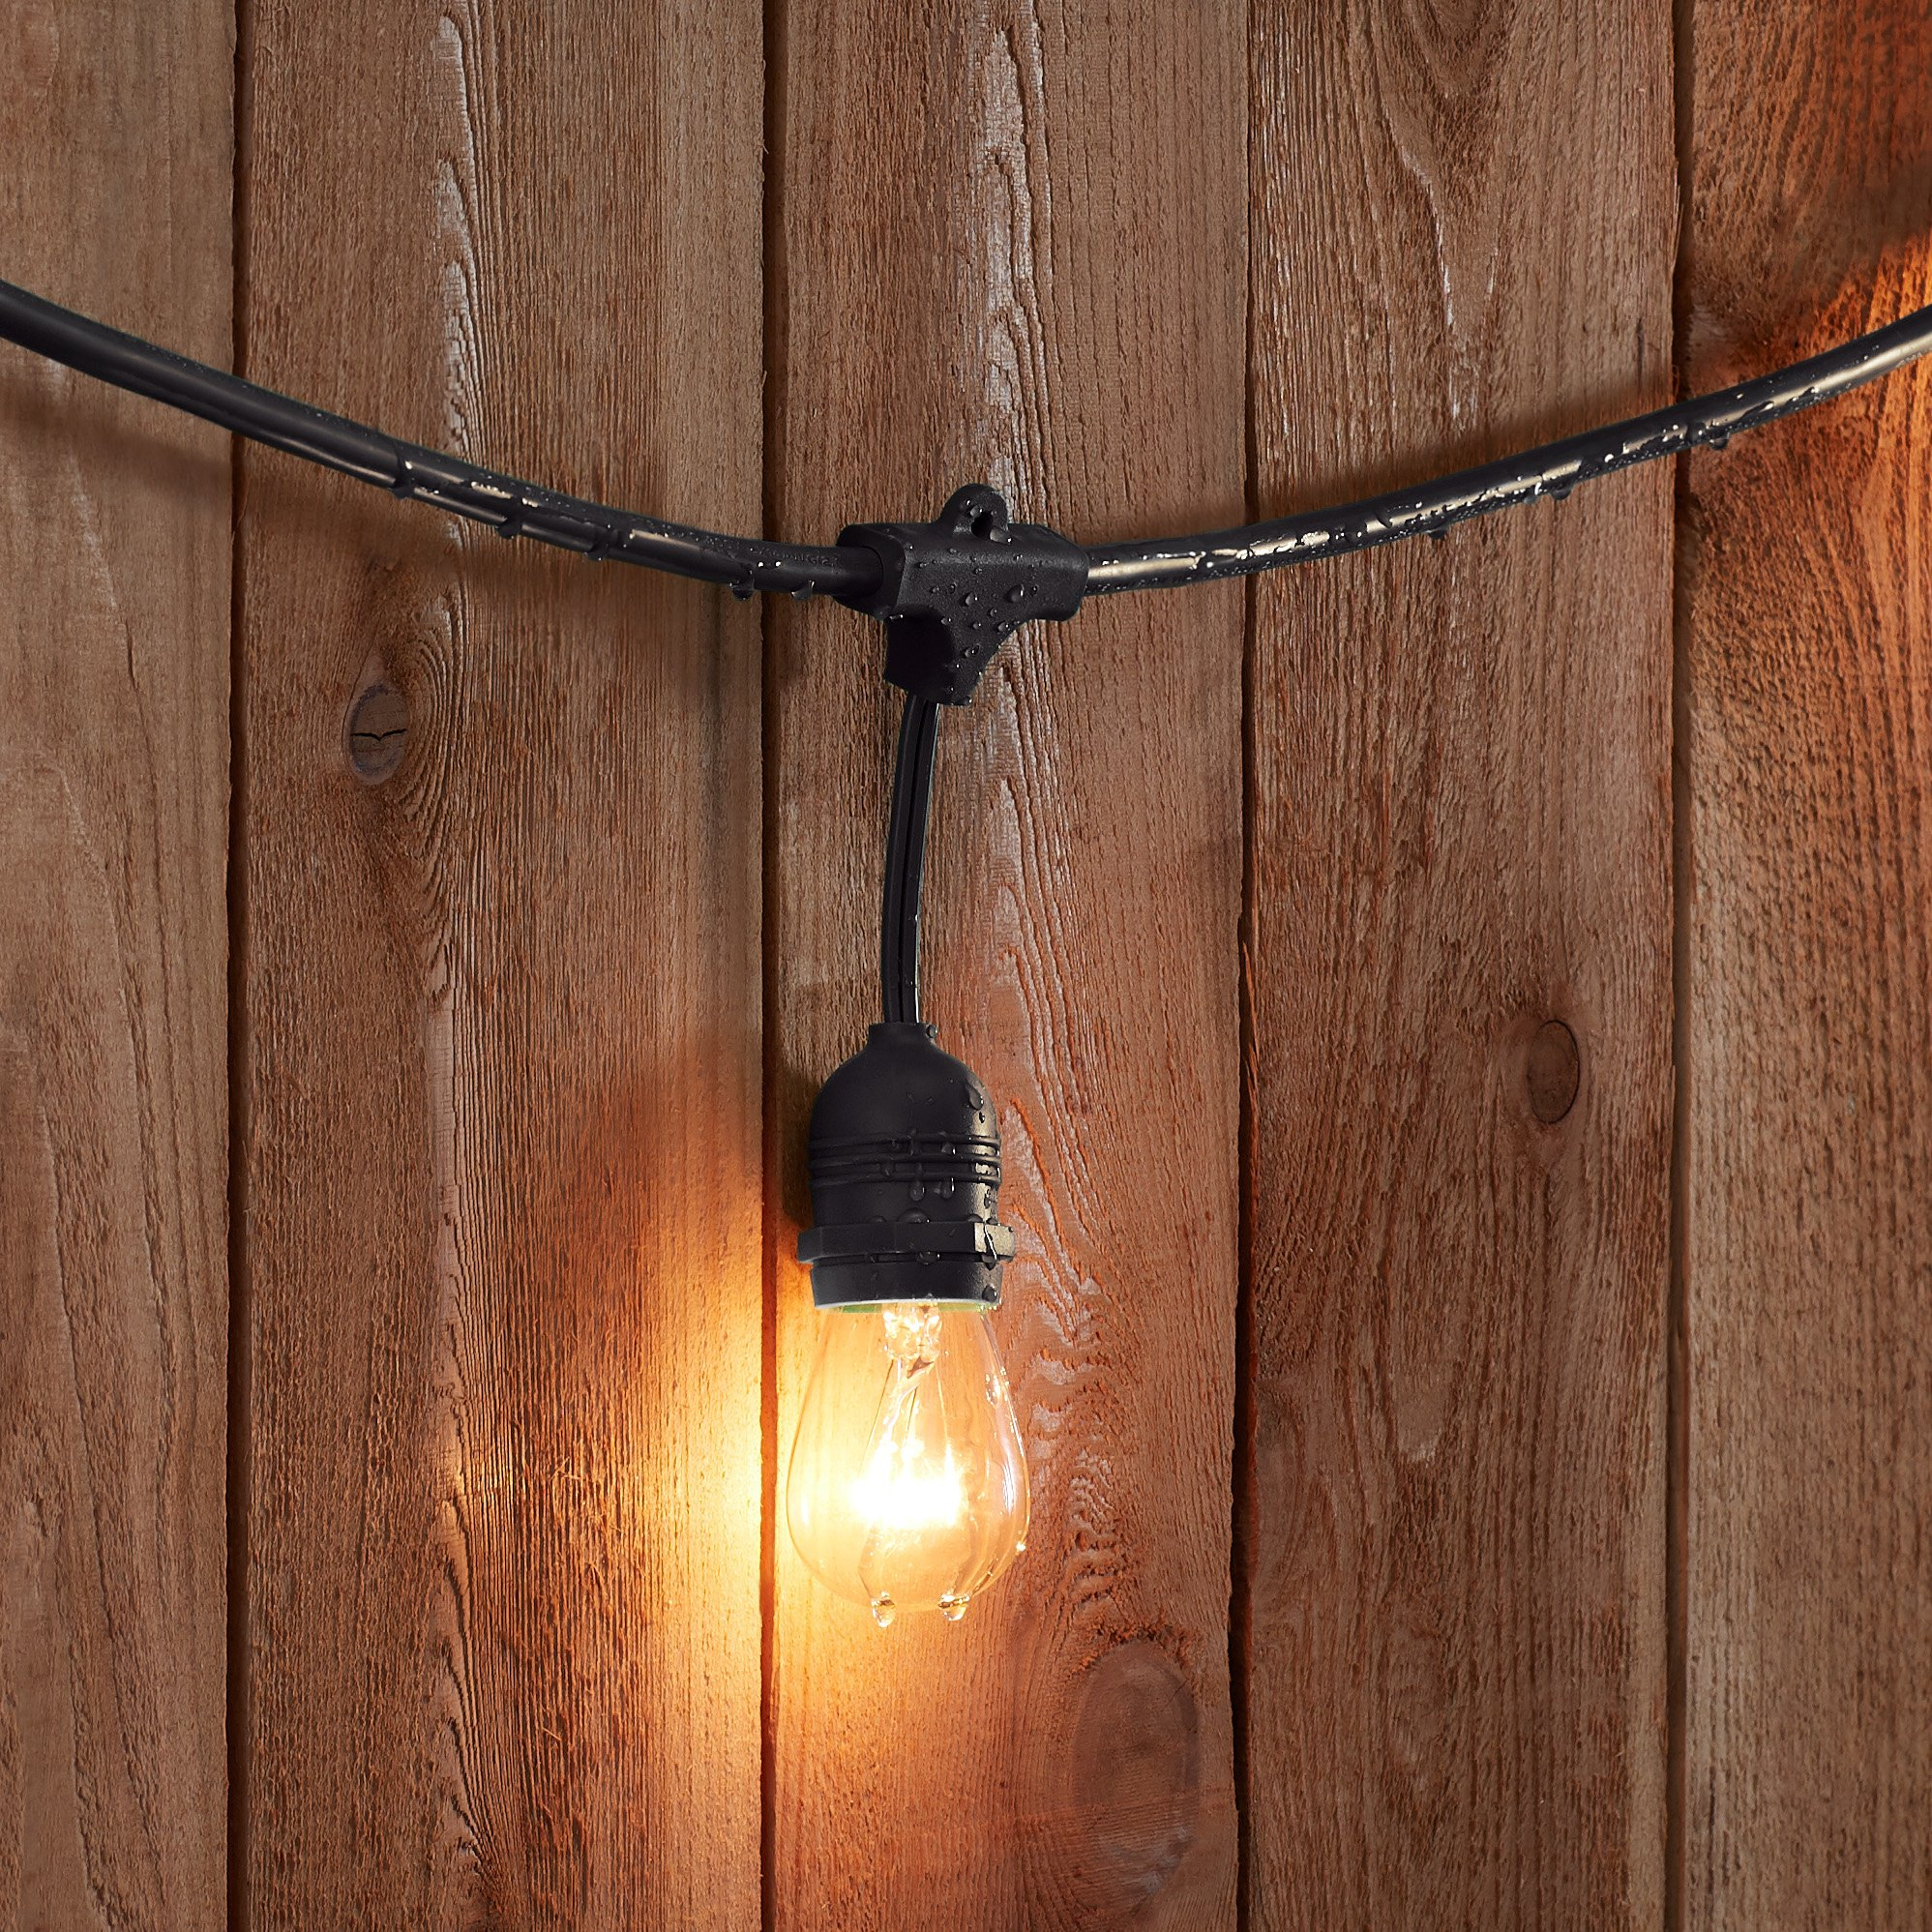 AmazonBasics Weatherproof Outdoor Patio String Lights S14 Bulb, Black, 48-Foot by AmazonBasics (Image #2)